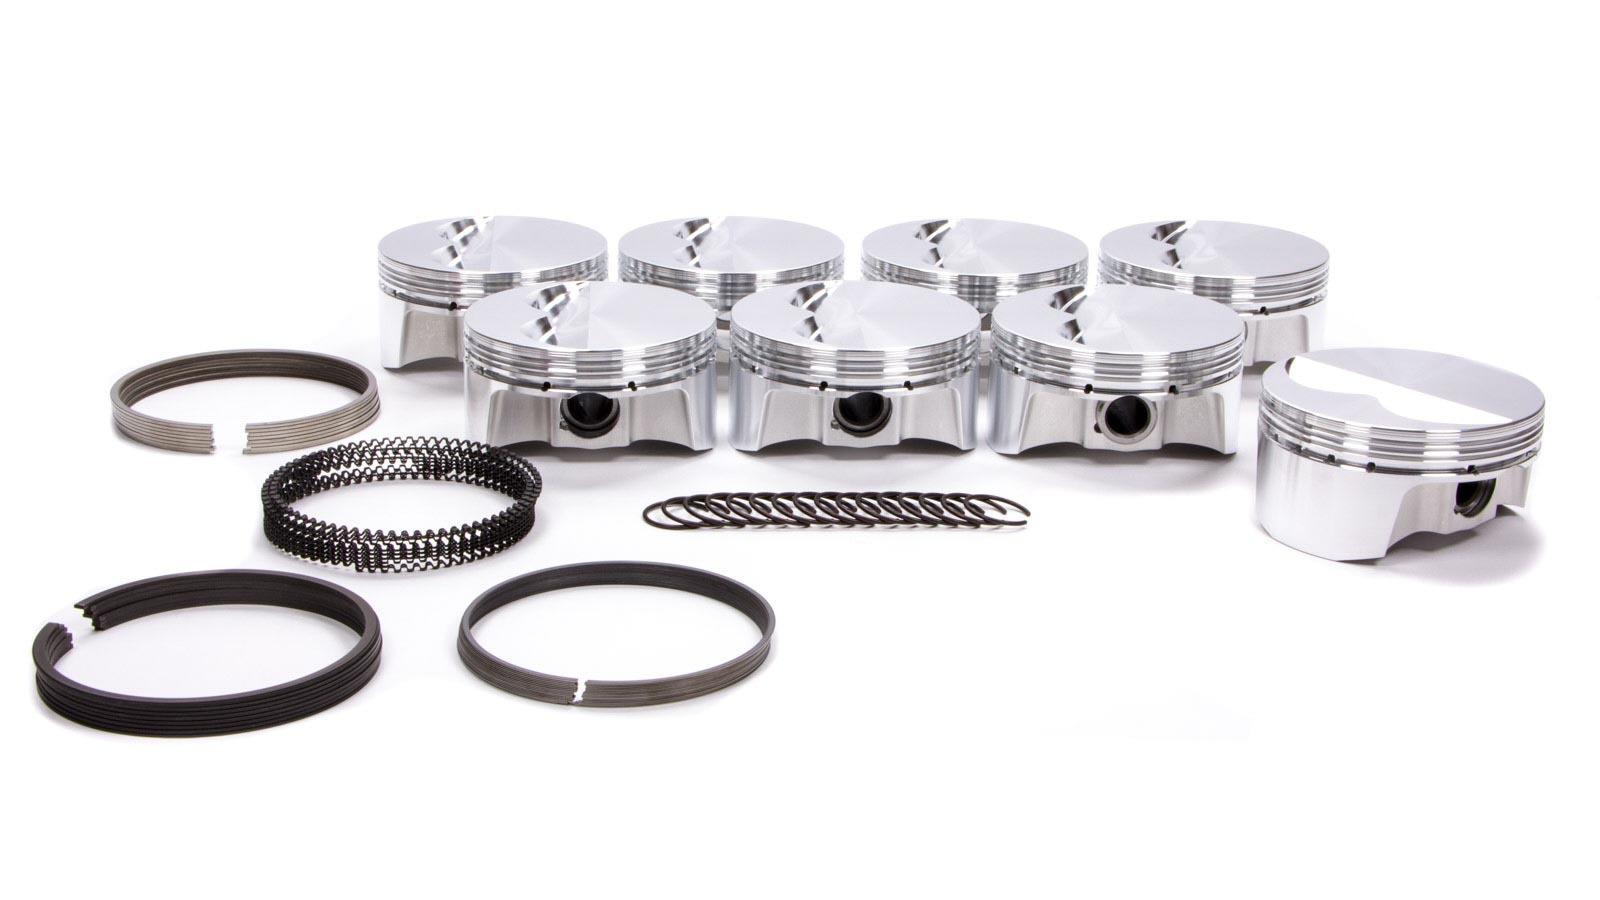 Bullet Pistons BC1100-040-8 Piston and Ring, Forged, 4.165 in Bore, 1.5 x 1.5 x 3 mm Ring Grooves, Minus 6.9 cc, Small Block Chevy, Kit